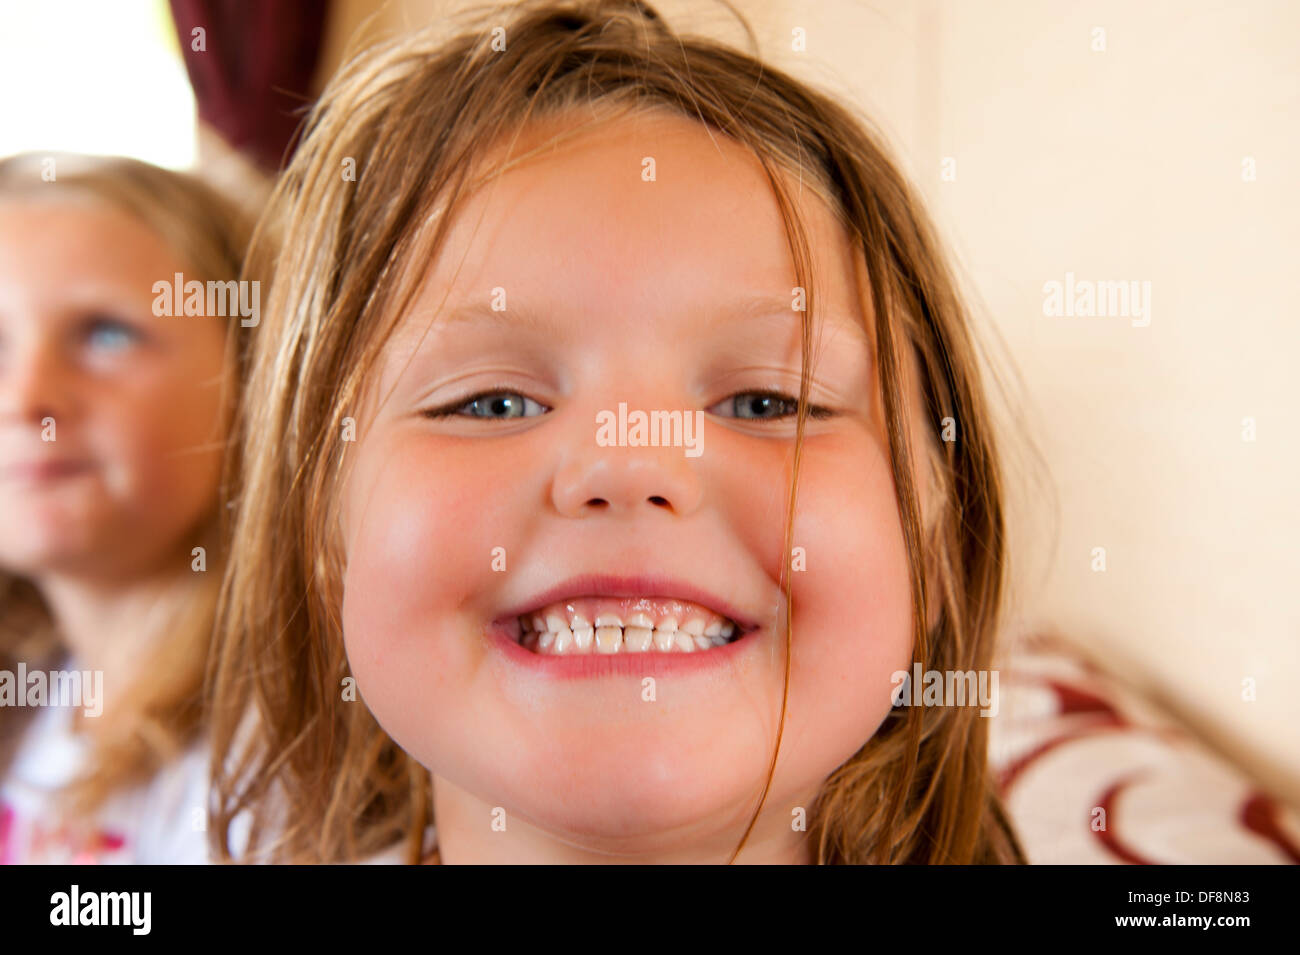 girl smiling to camera with toothy grin and sister in background - Stock Image